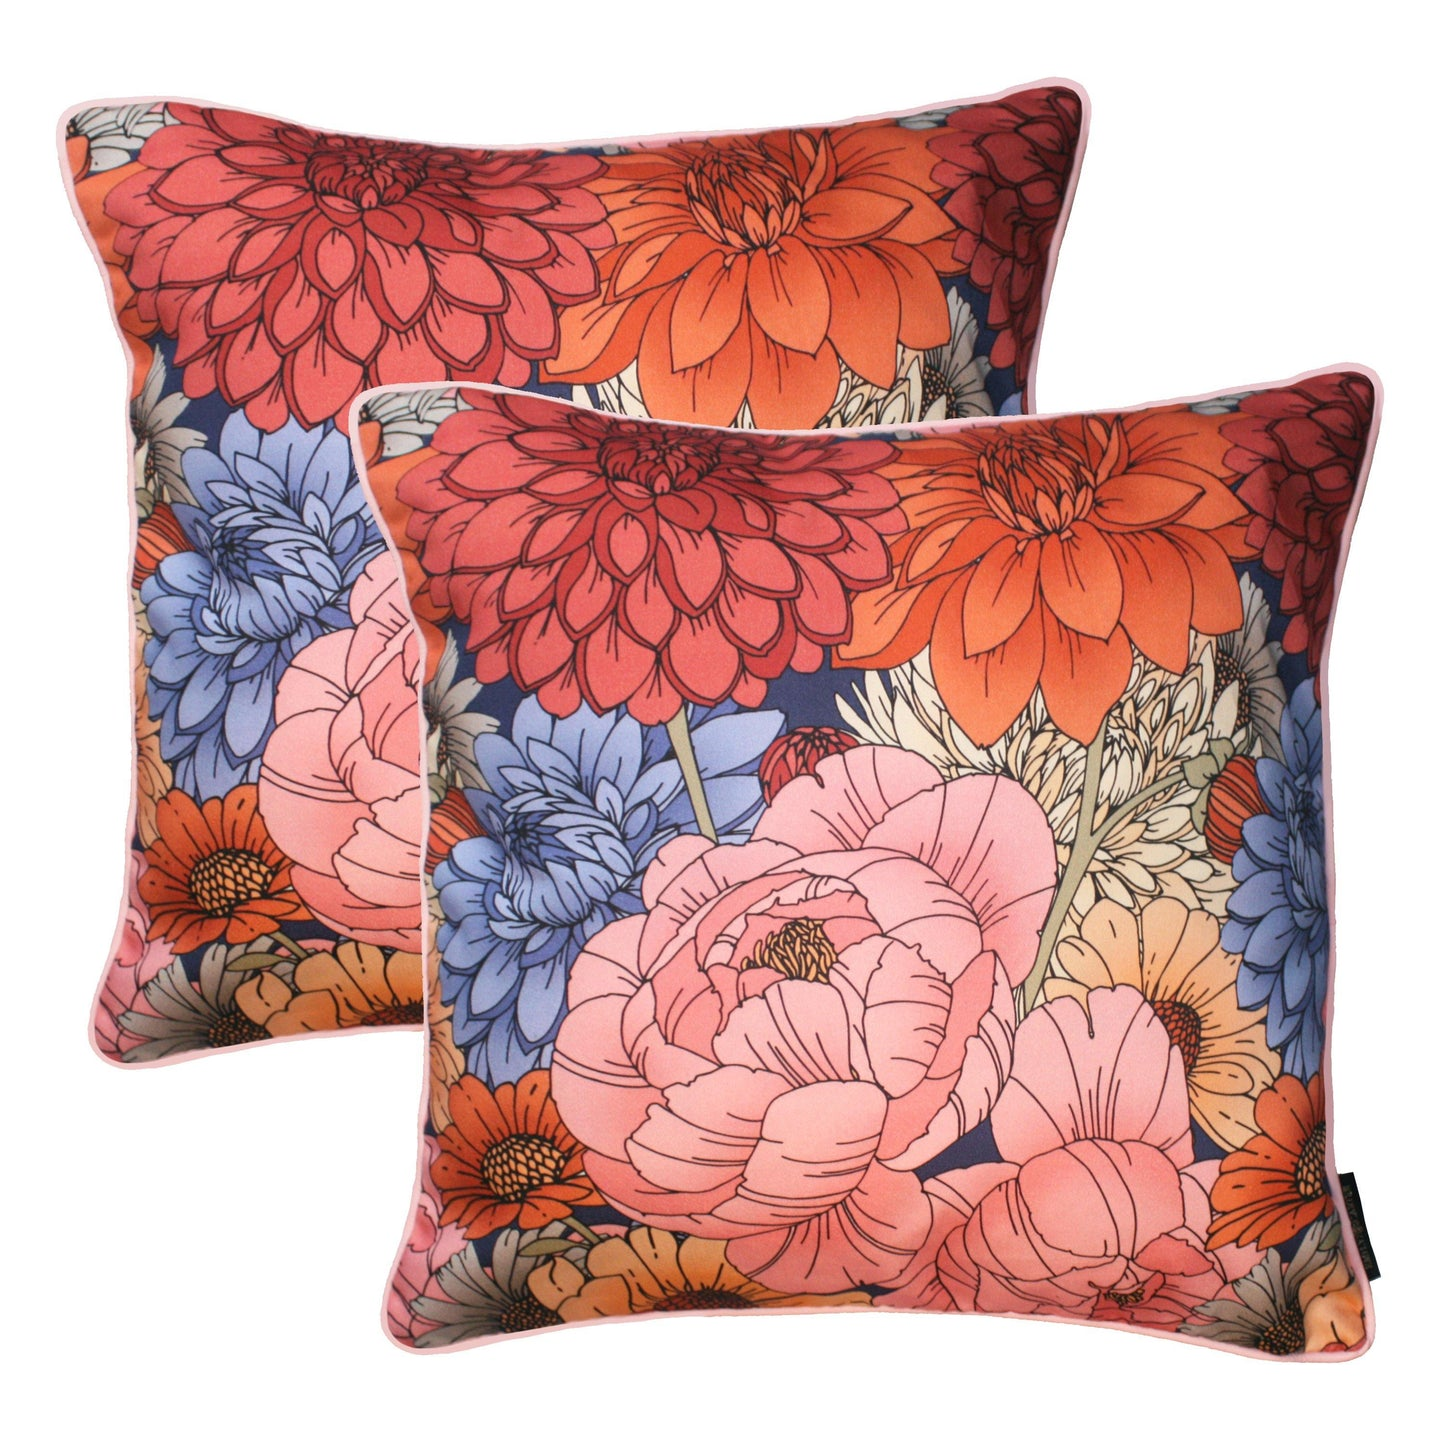 The Antique Floral Cushion Set | 45x45cm - Emily Carter London